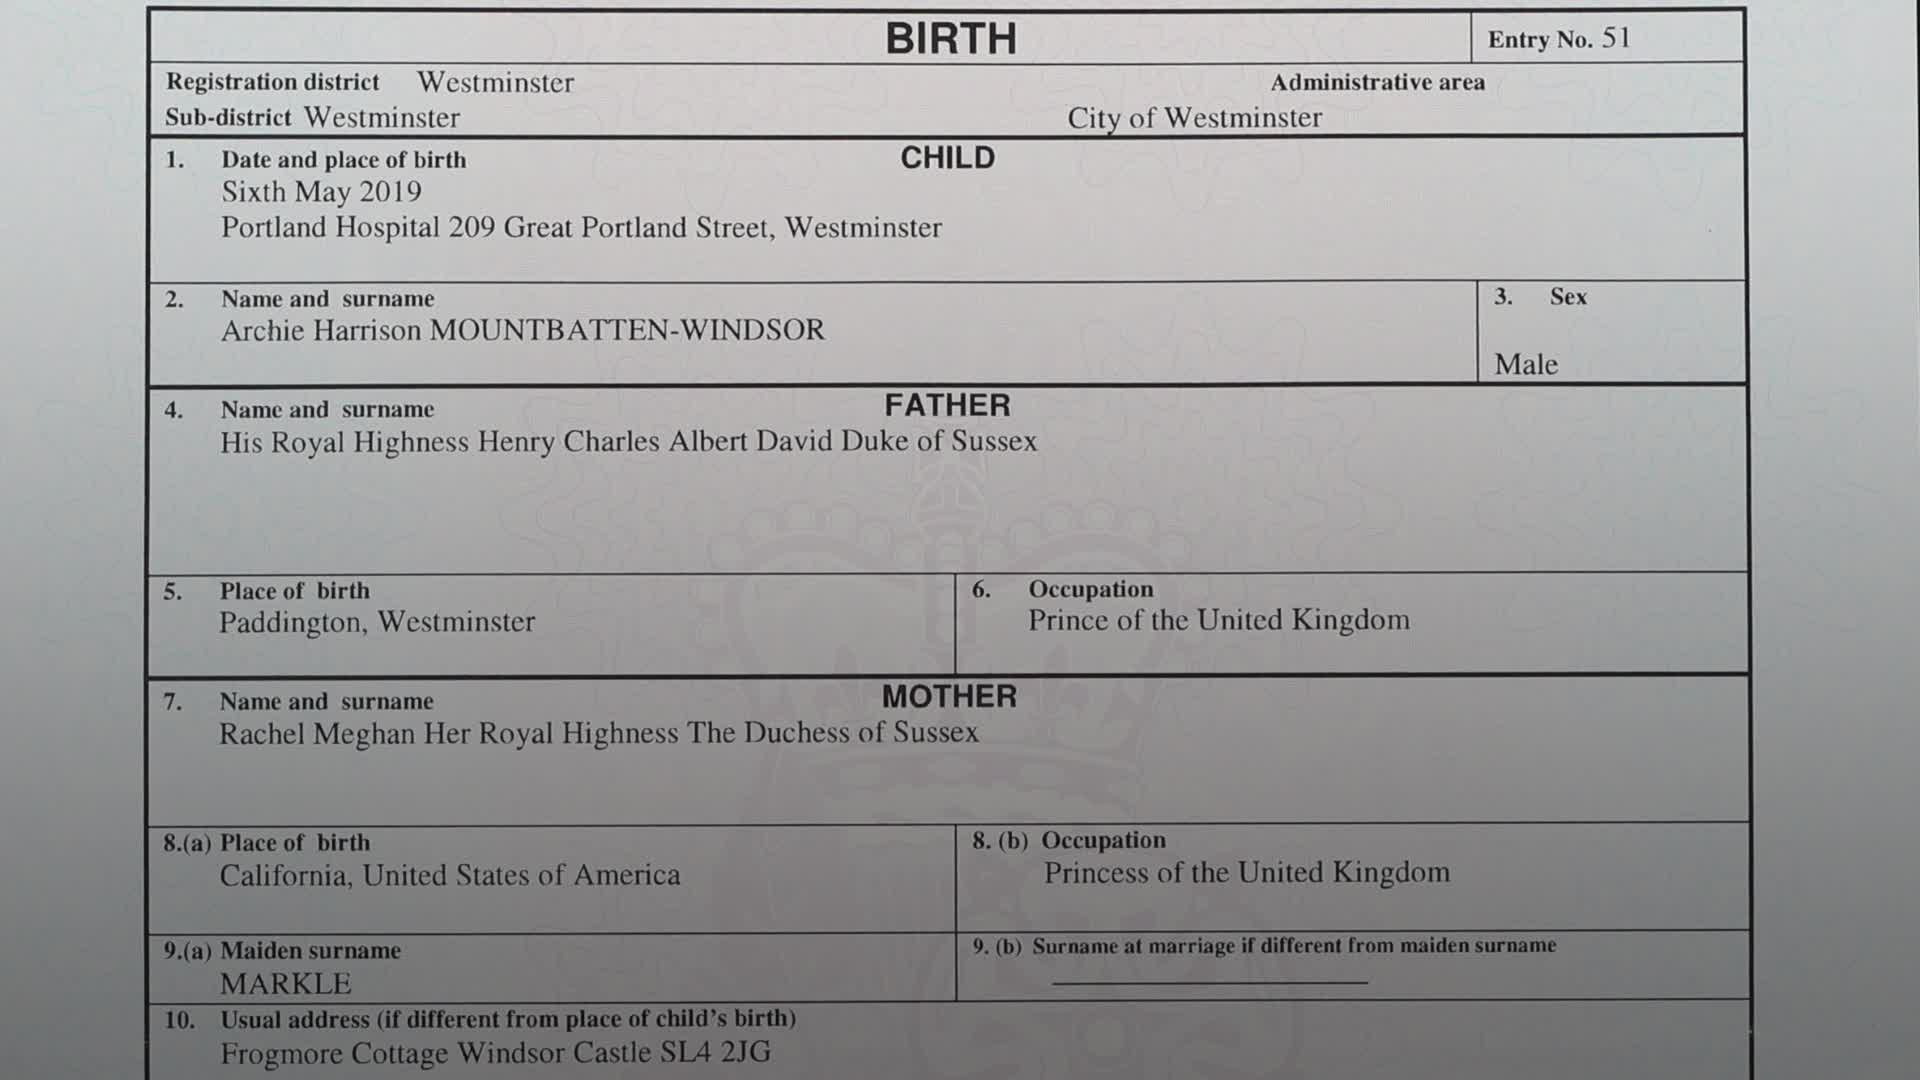 Why Meghan Markle is listed as a princess on Archie's birth certificate